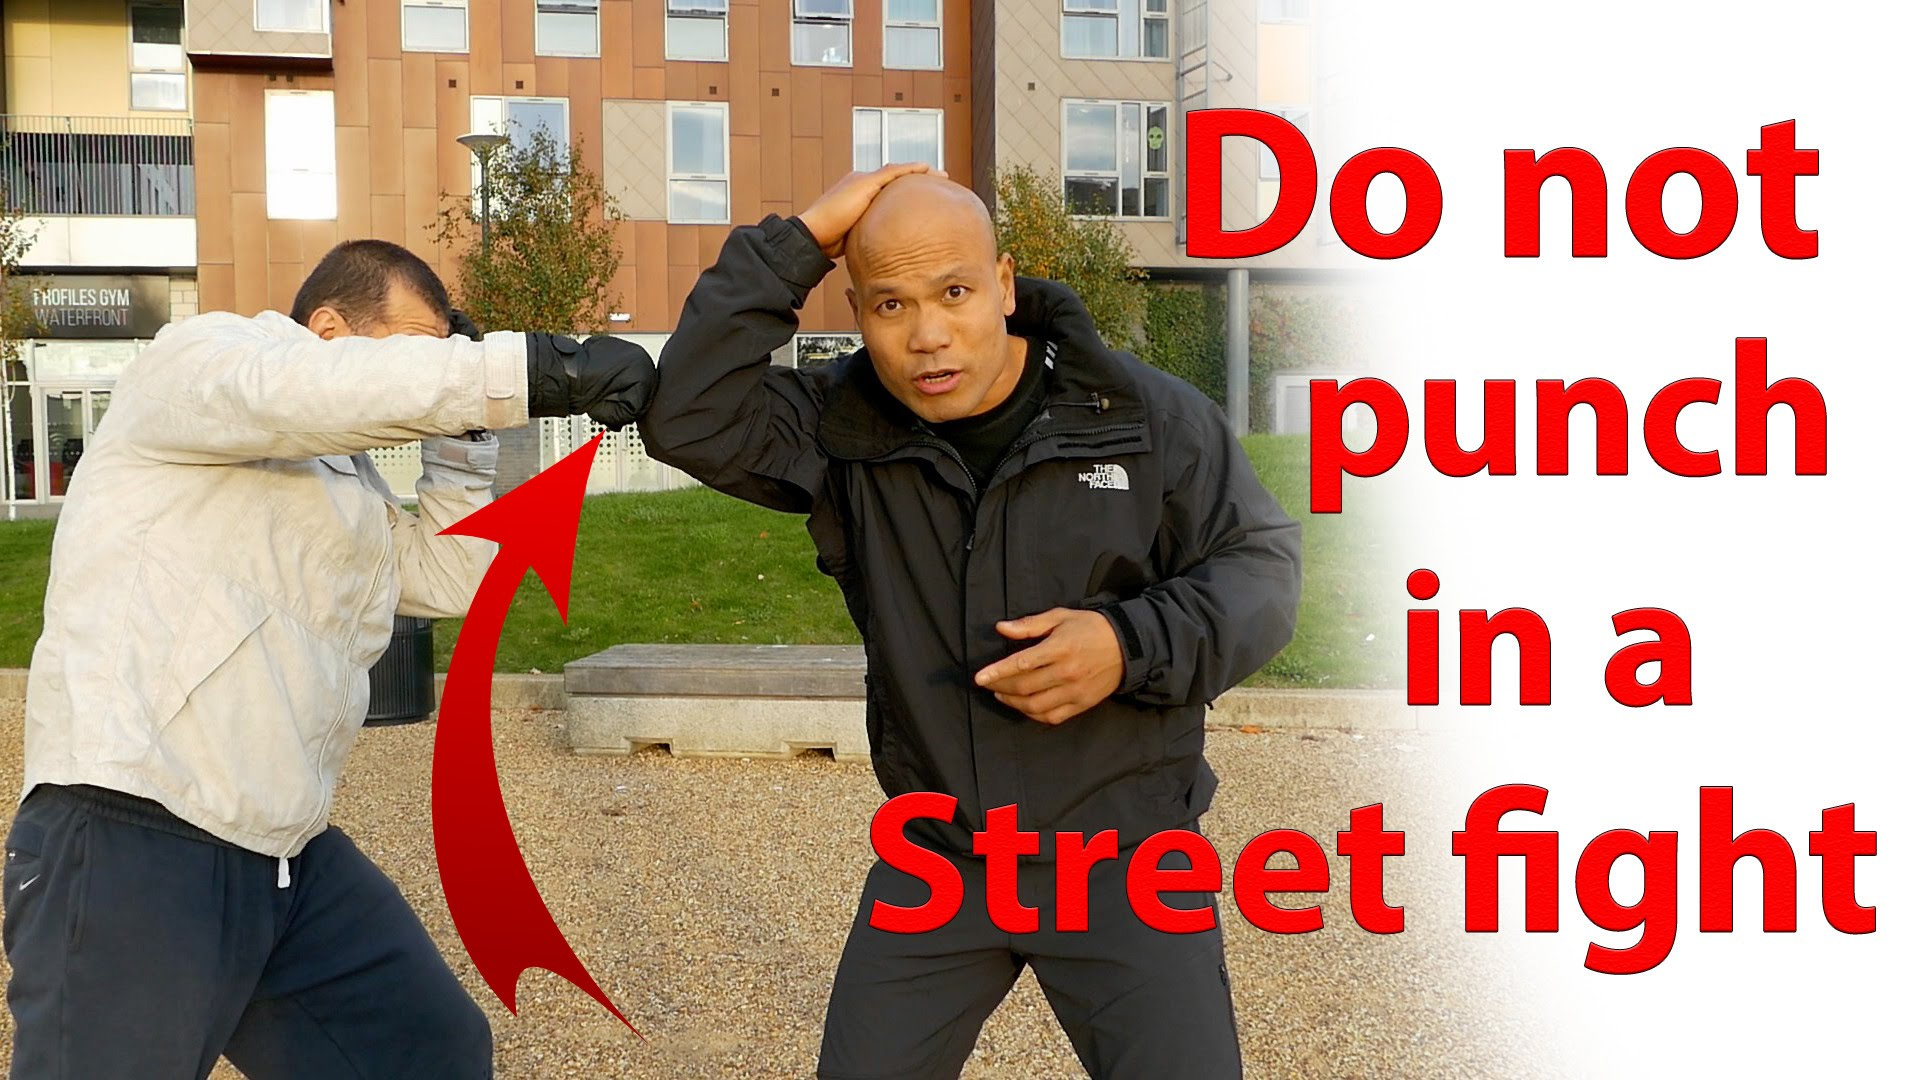 Why You Don't Punch in a Street Fight